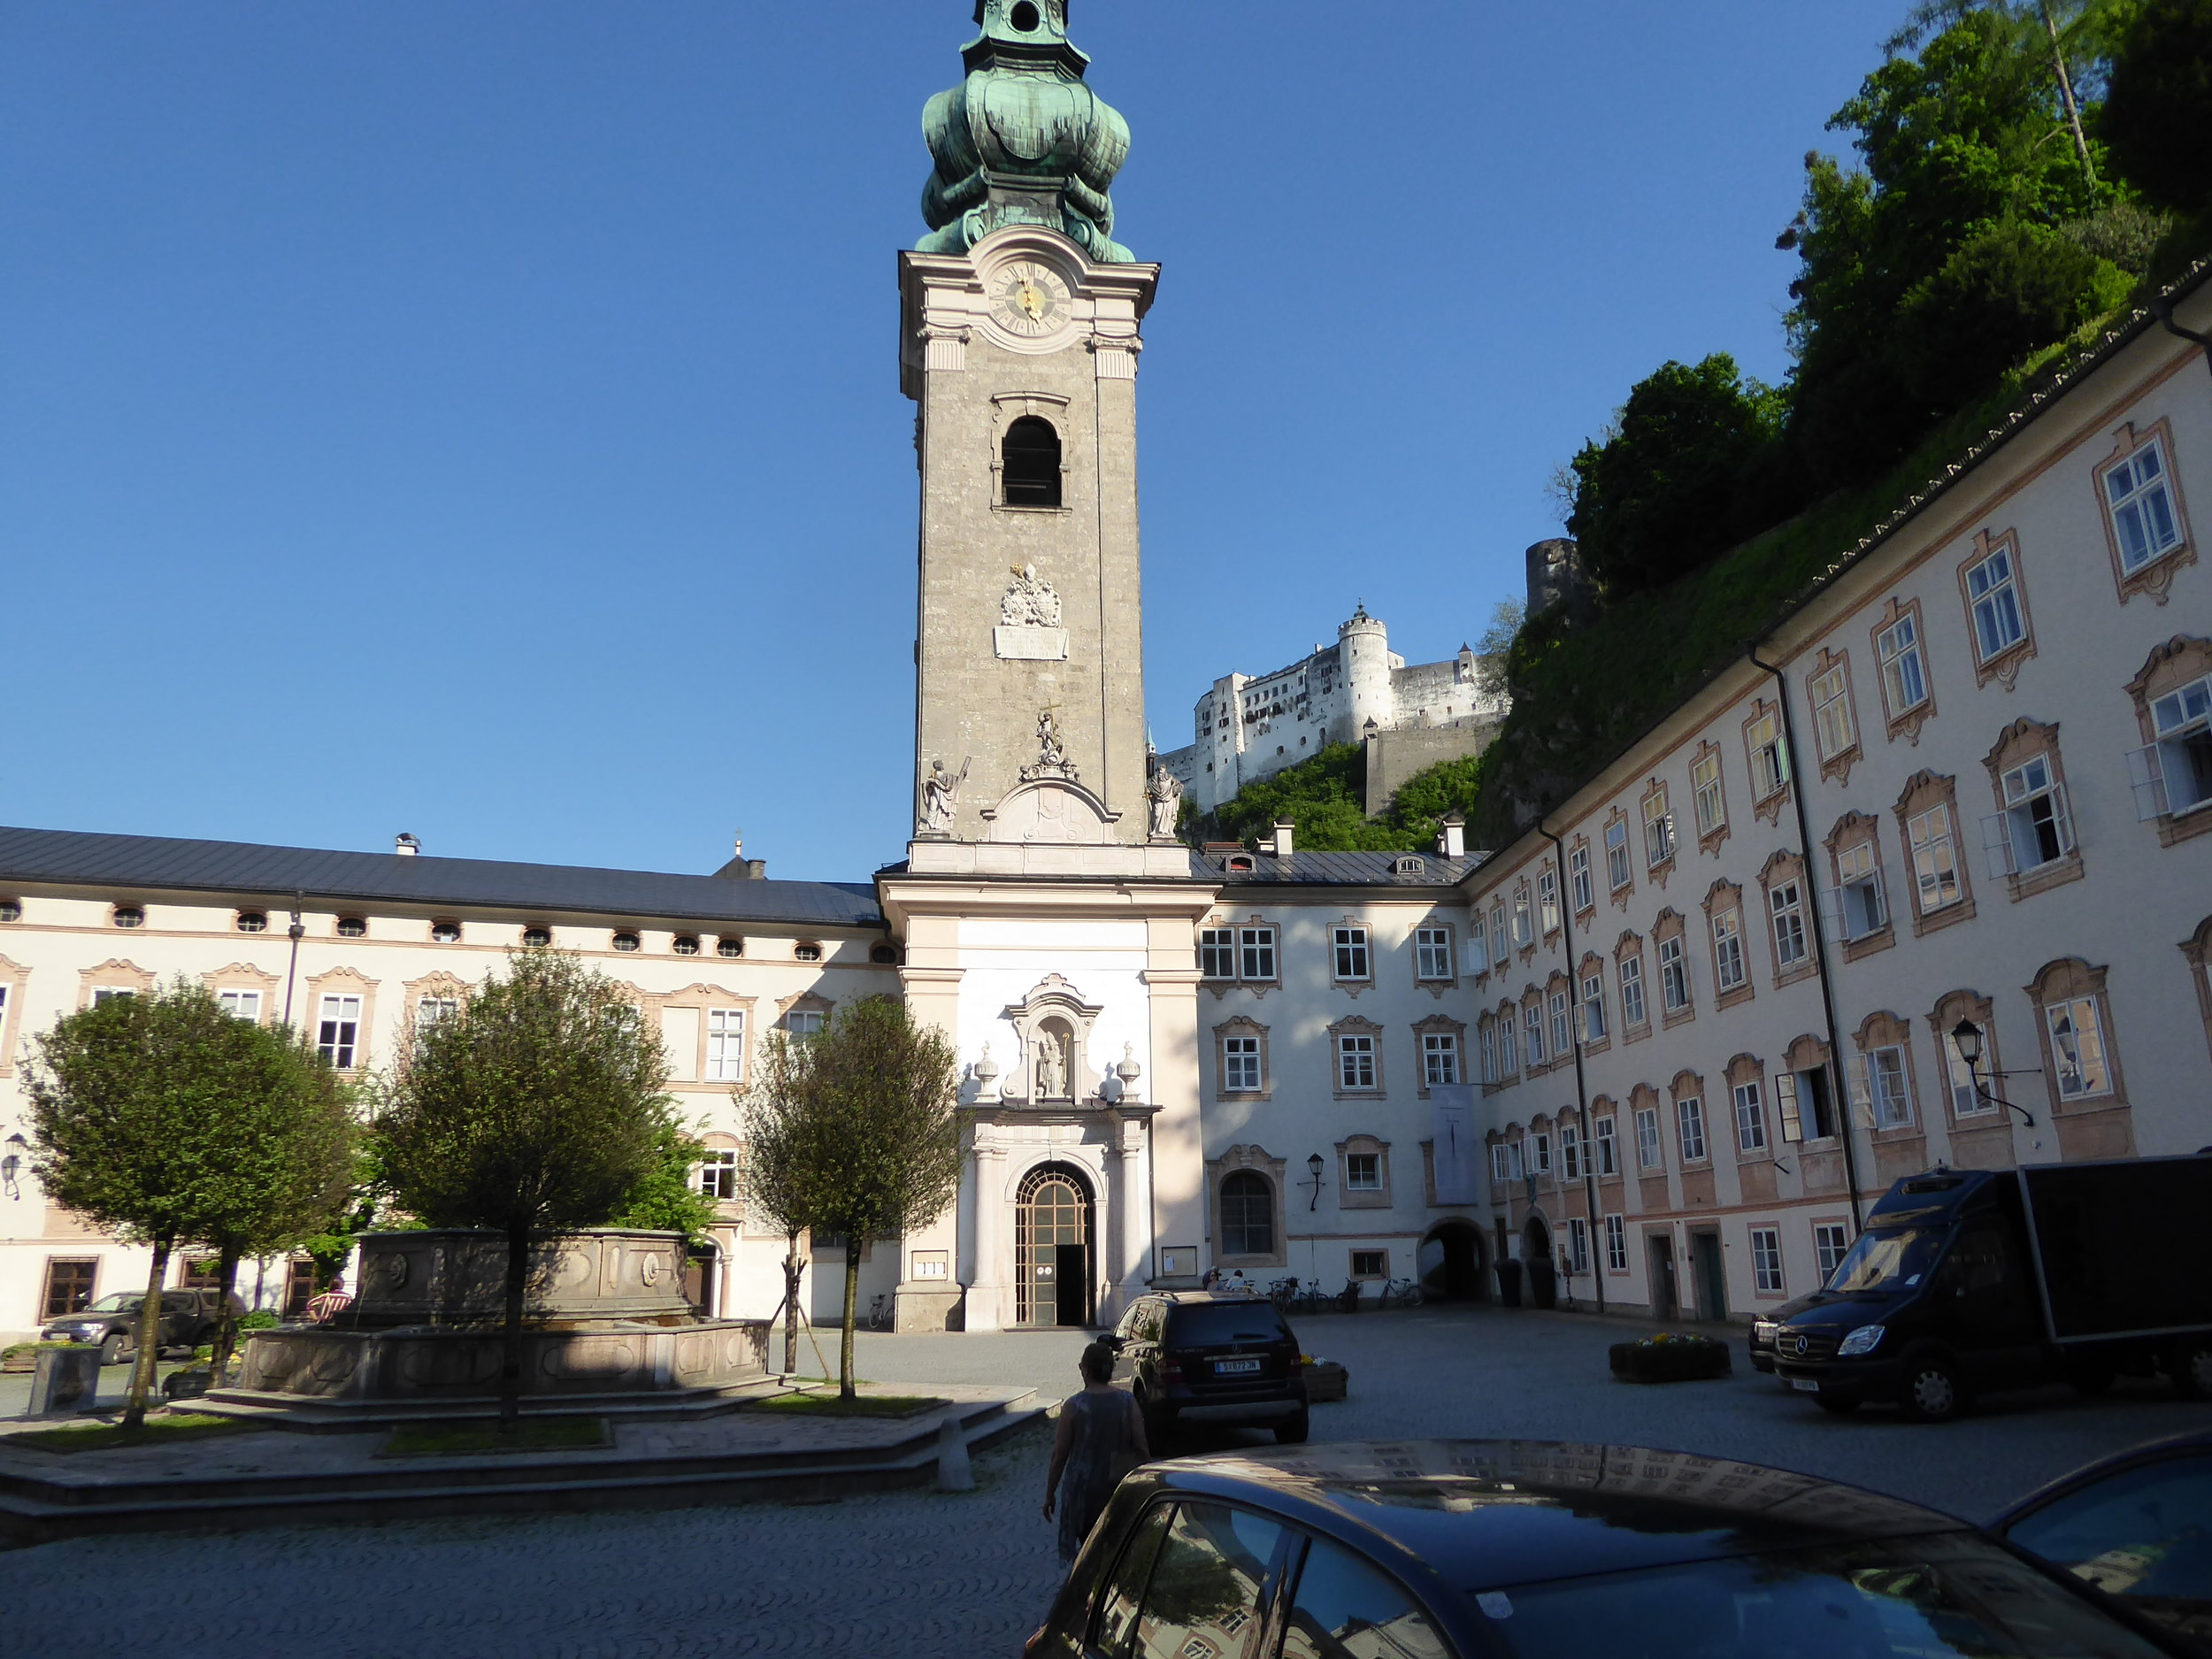 Quiet courtyards in Salzburg give relief from the busy shopping areas adjacent to them.